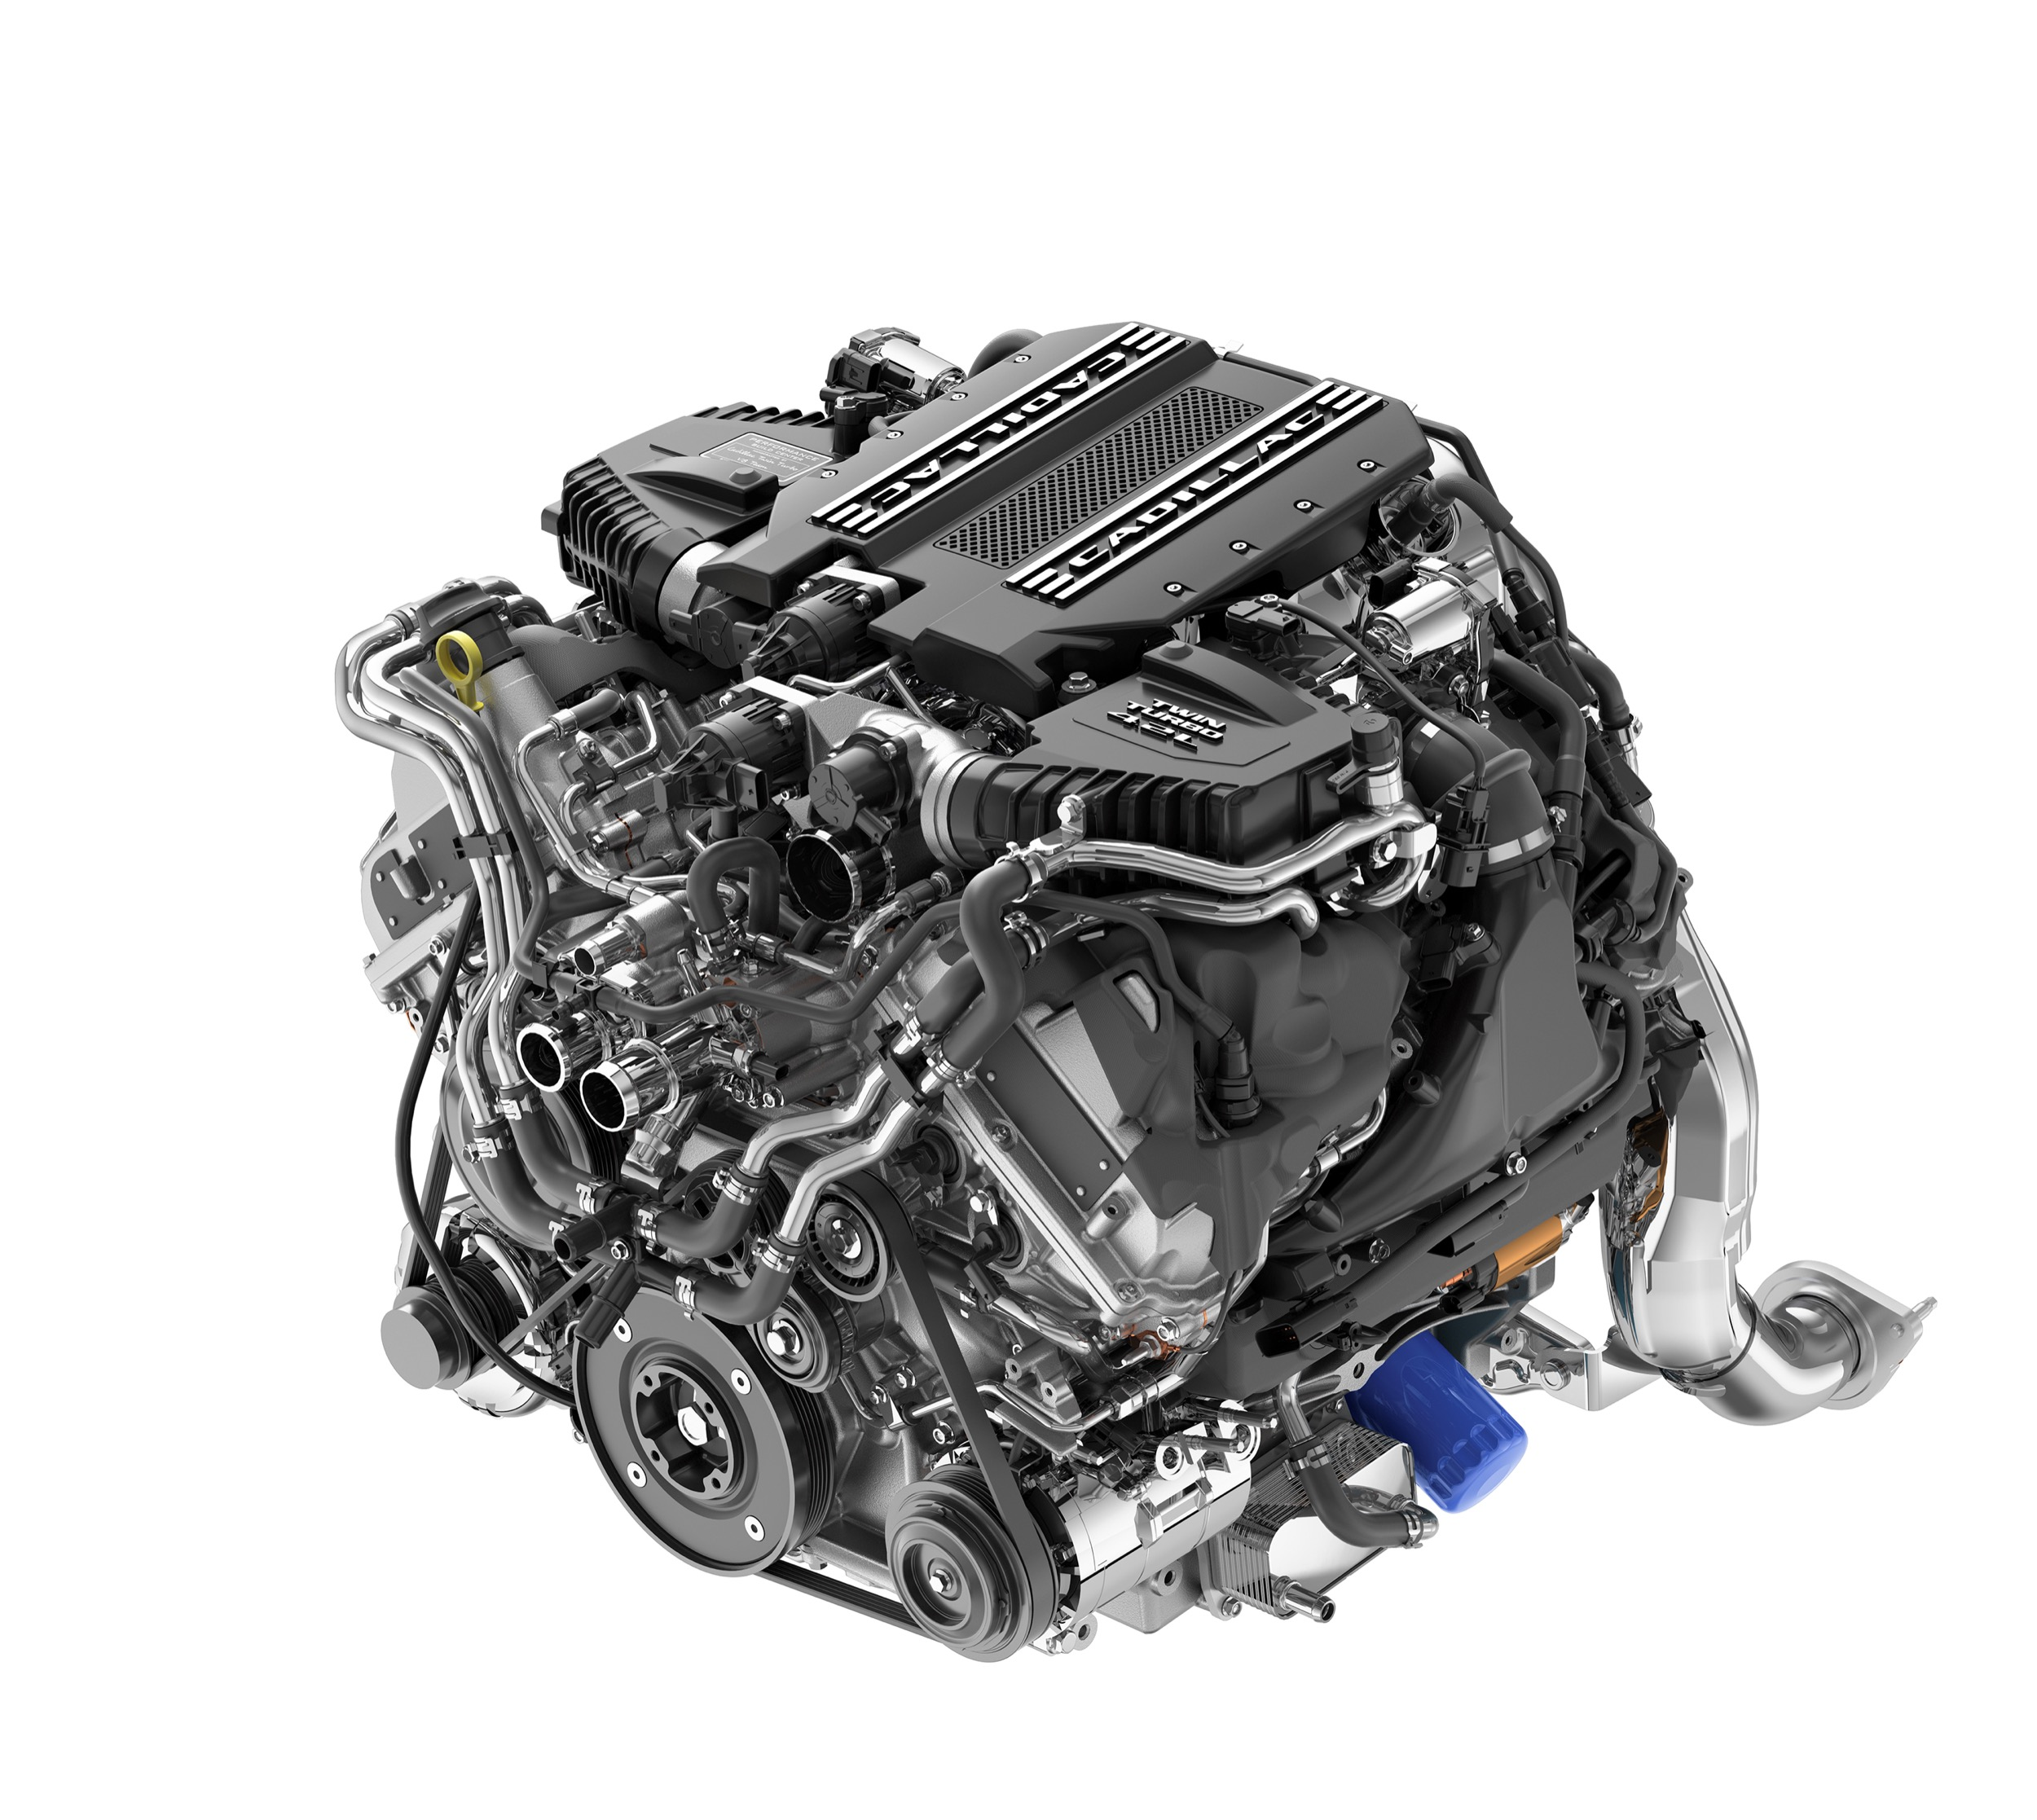 Cadillac 4.2L Twin-Turbo V8 Engine Pictures, Photos, Images